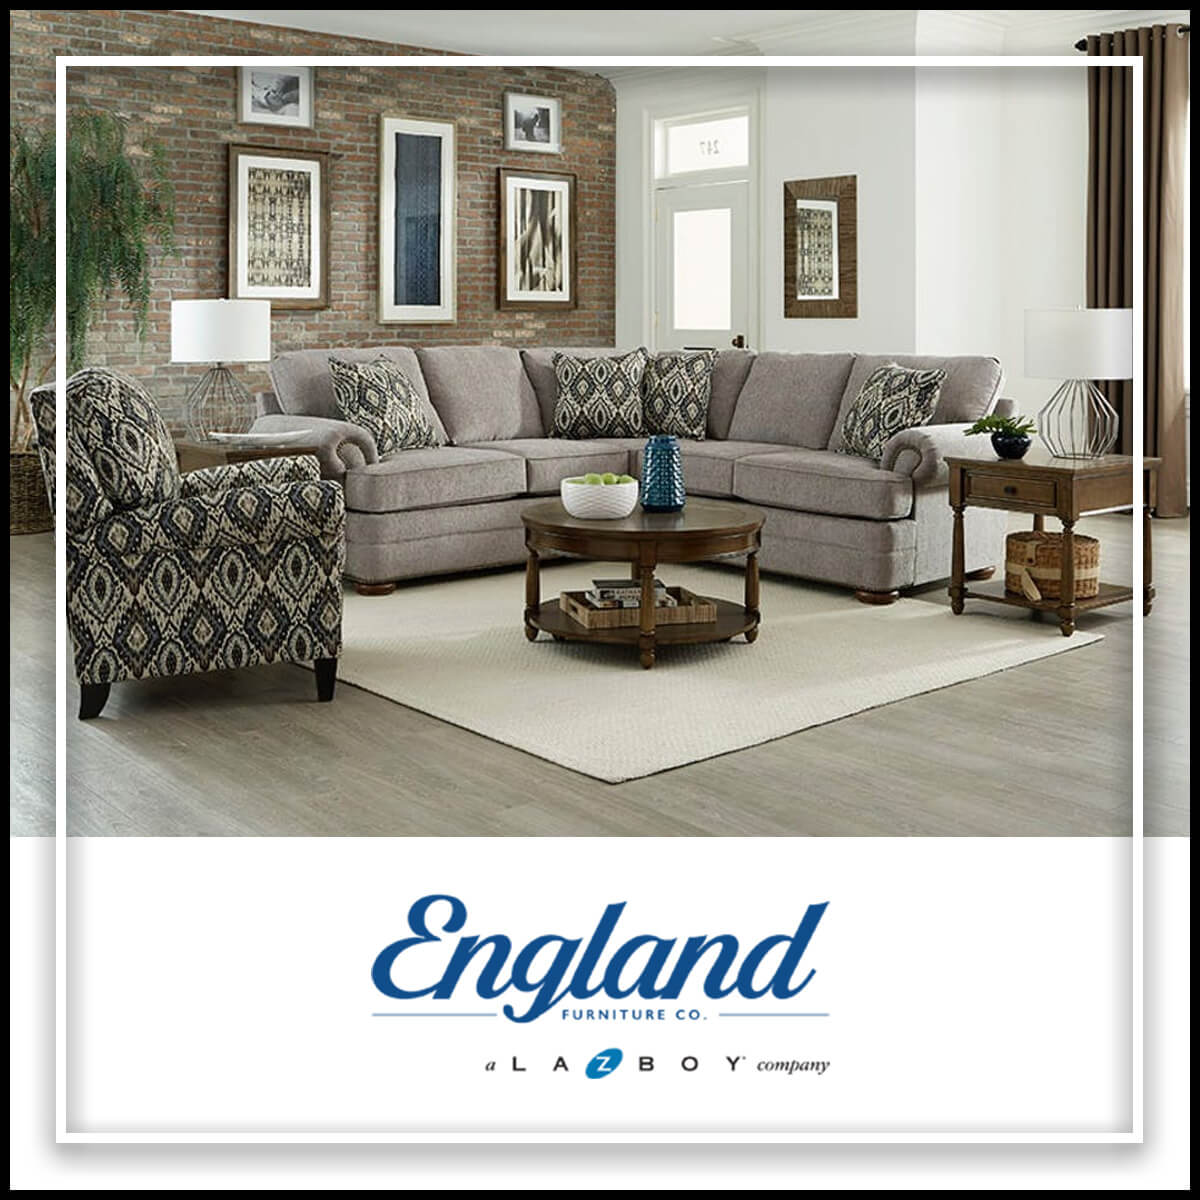 Shop England Furniture Co.